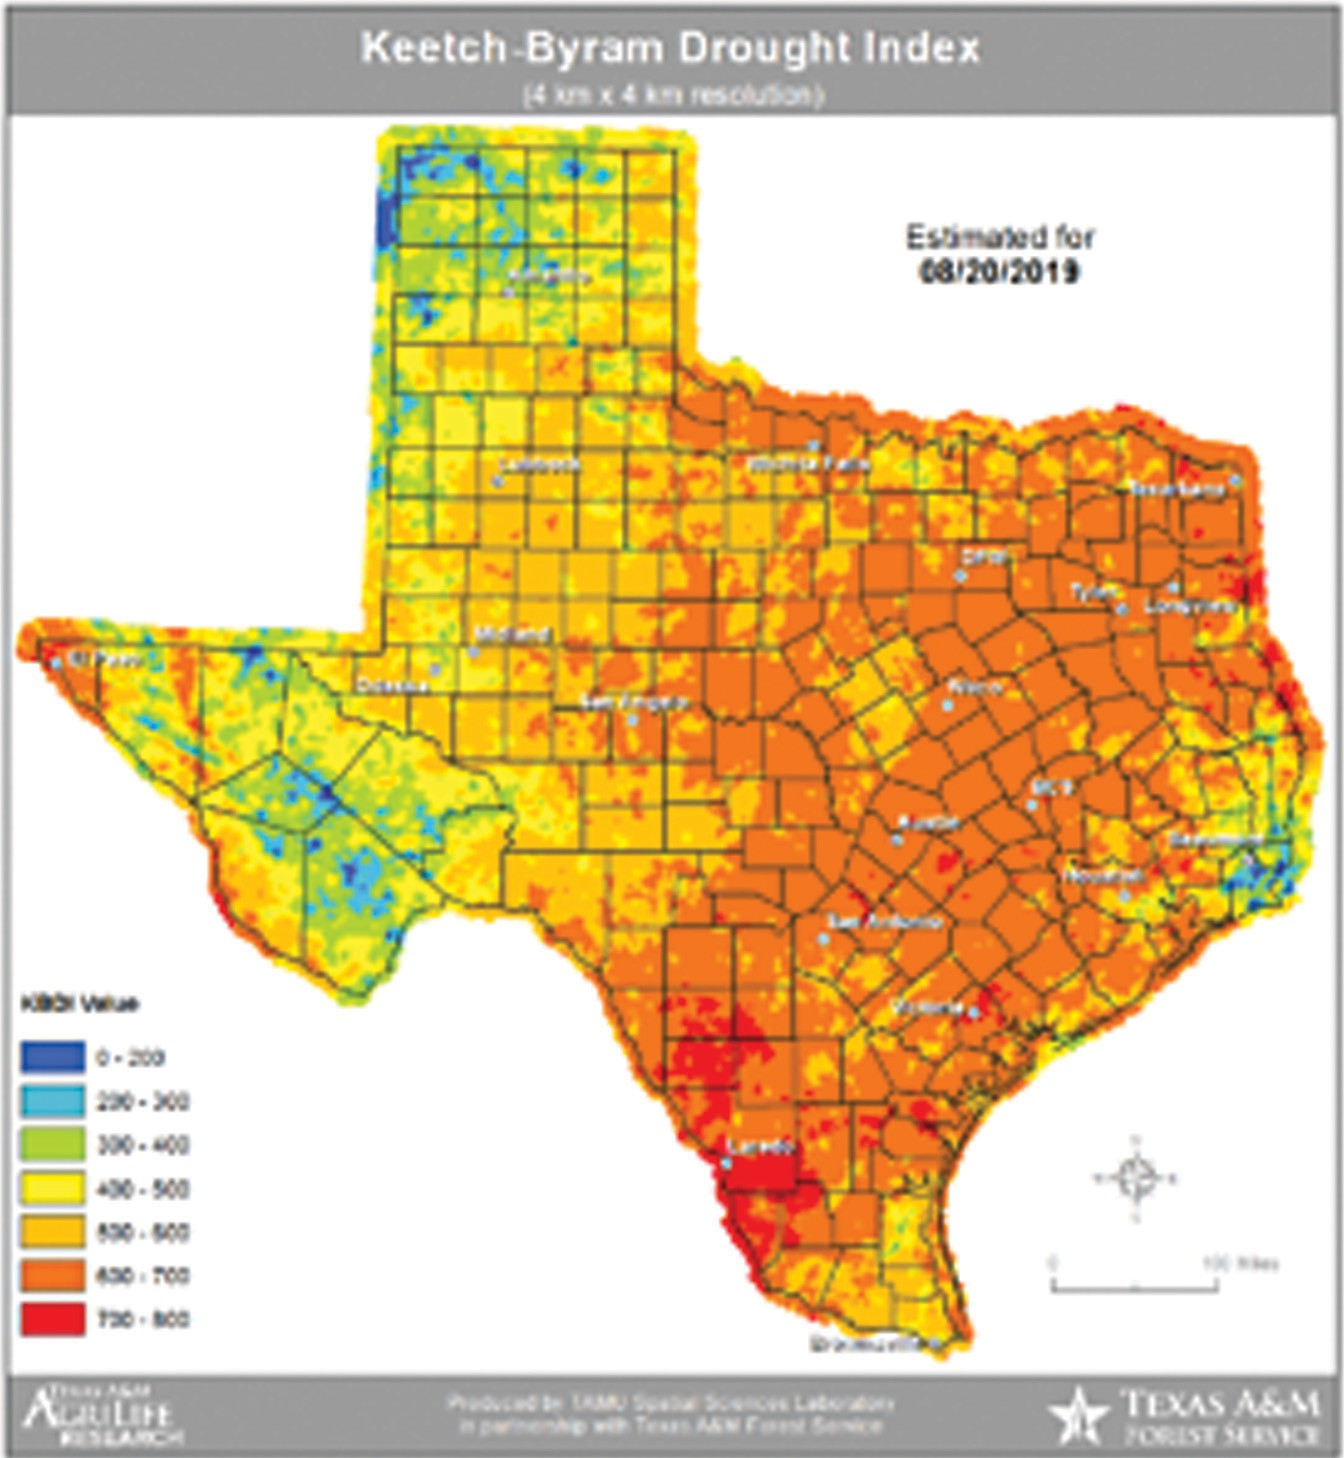 State Of Texas Weather Map.Texas Crop And Weather Report Texas Weather Swings From Extreme To